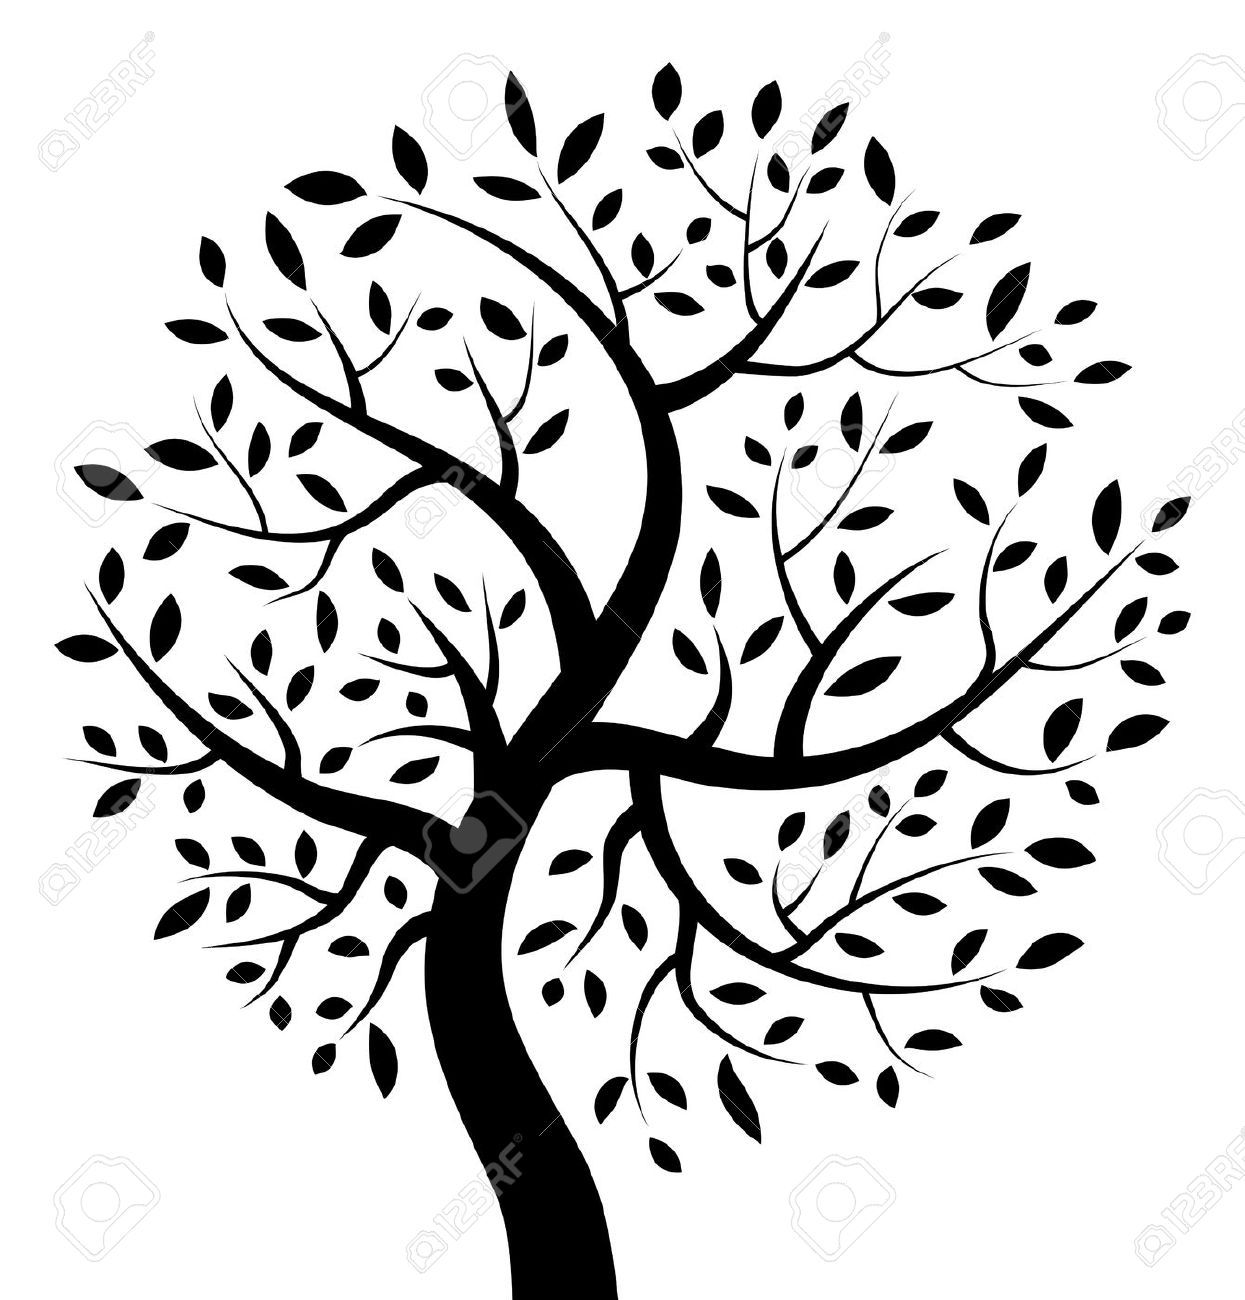 Family Tree Images, Stock Pictures, Royalty Free Family Tree ...